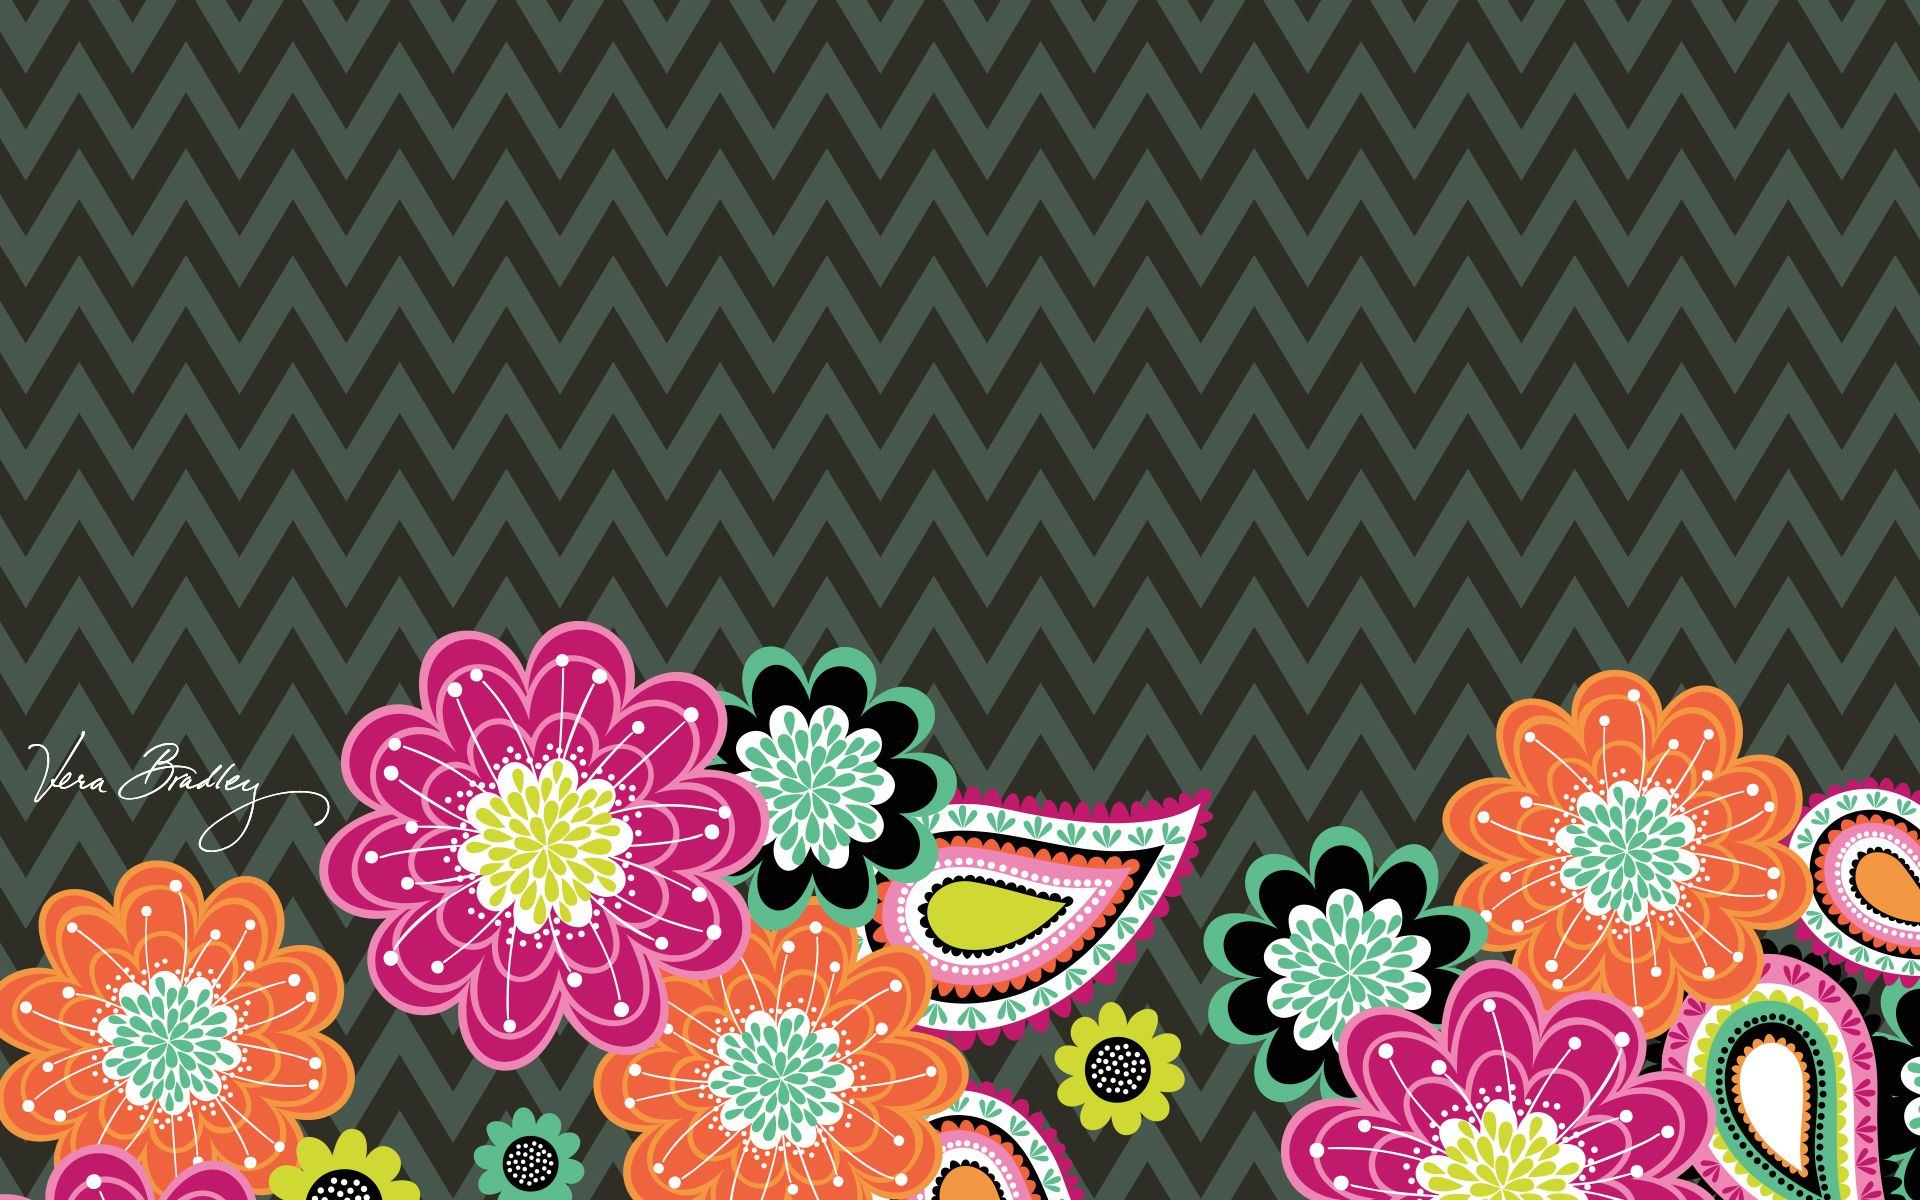 dress your tech ziggy zinnia desktop wallpaper vera bradley